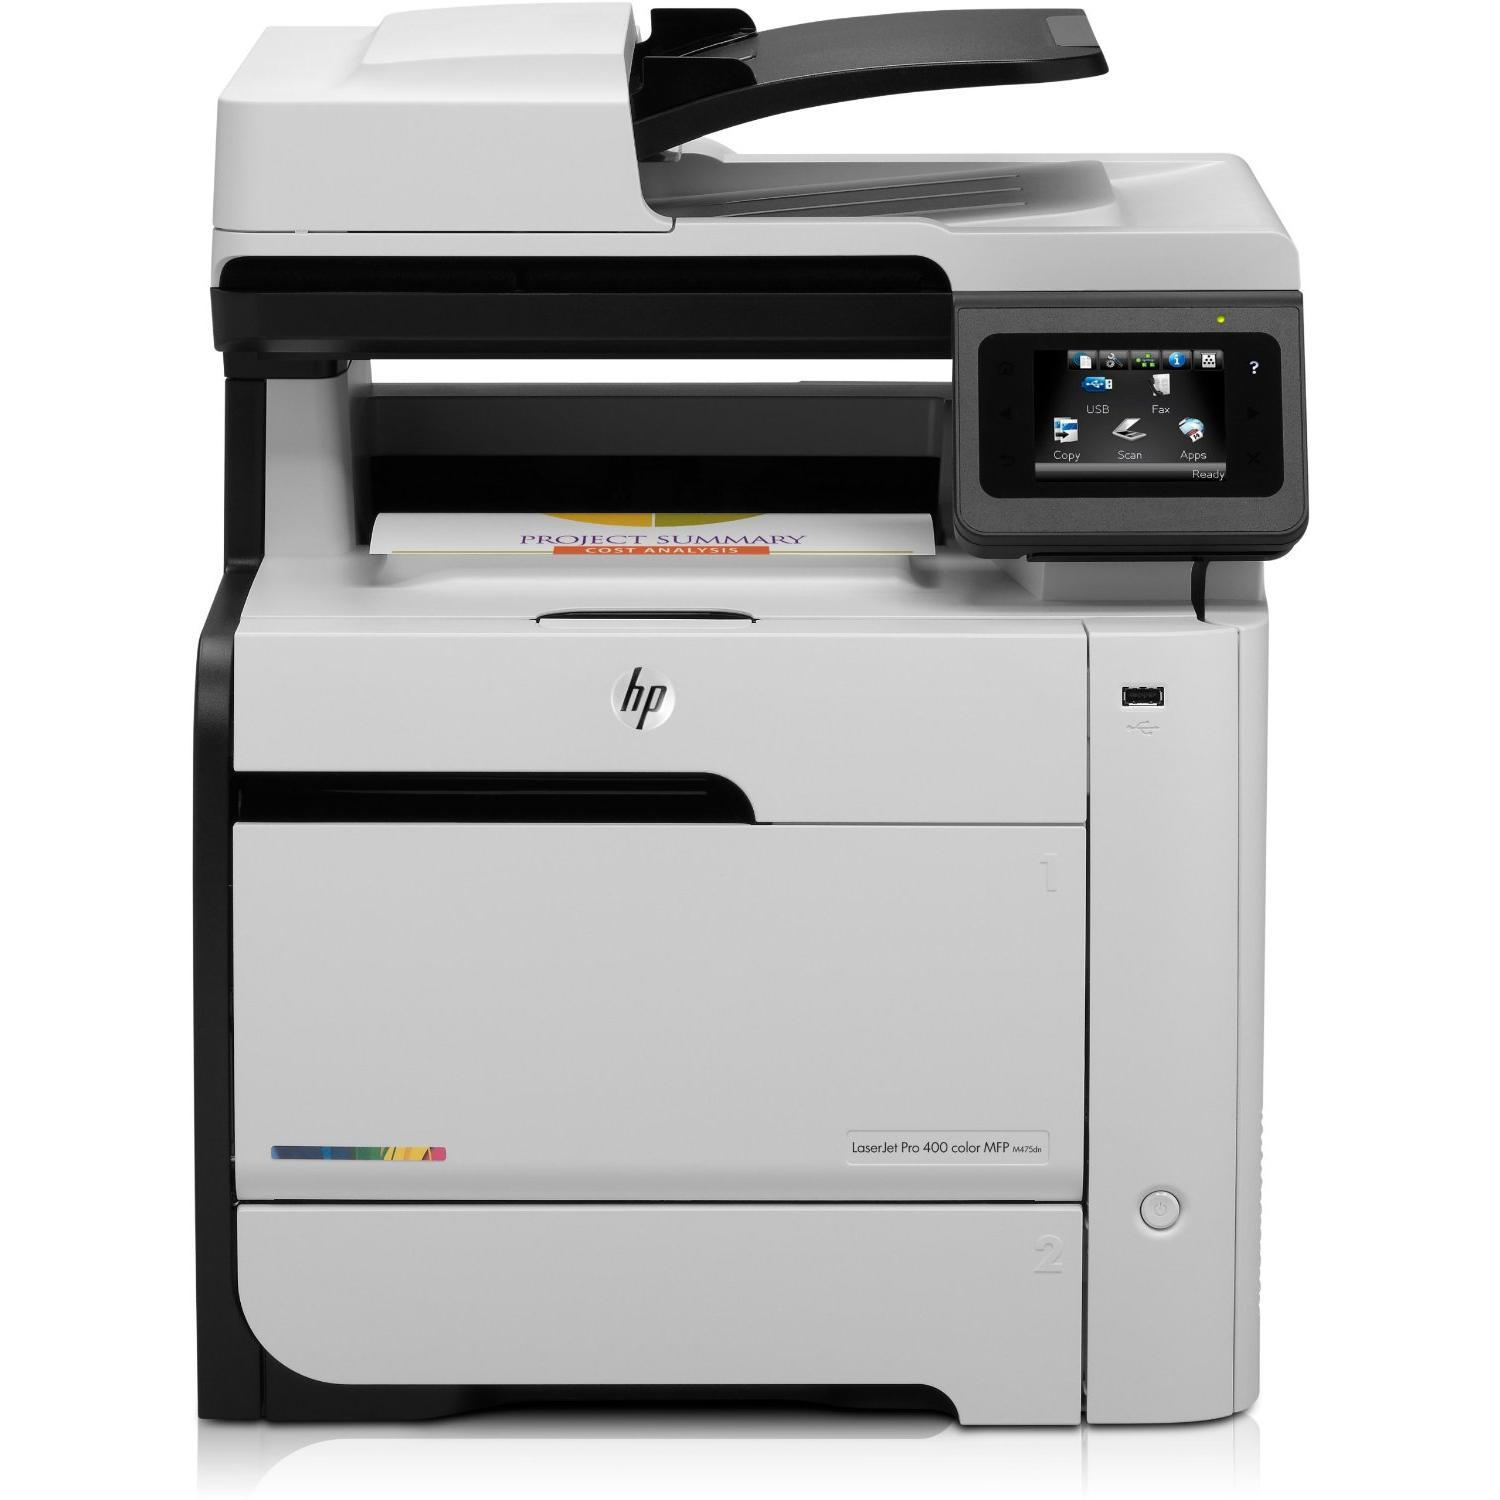 Imprimante laser couleur HP LaserJet Pro 400 color MFP M475dn